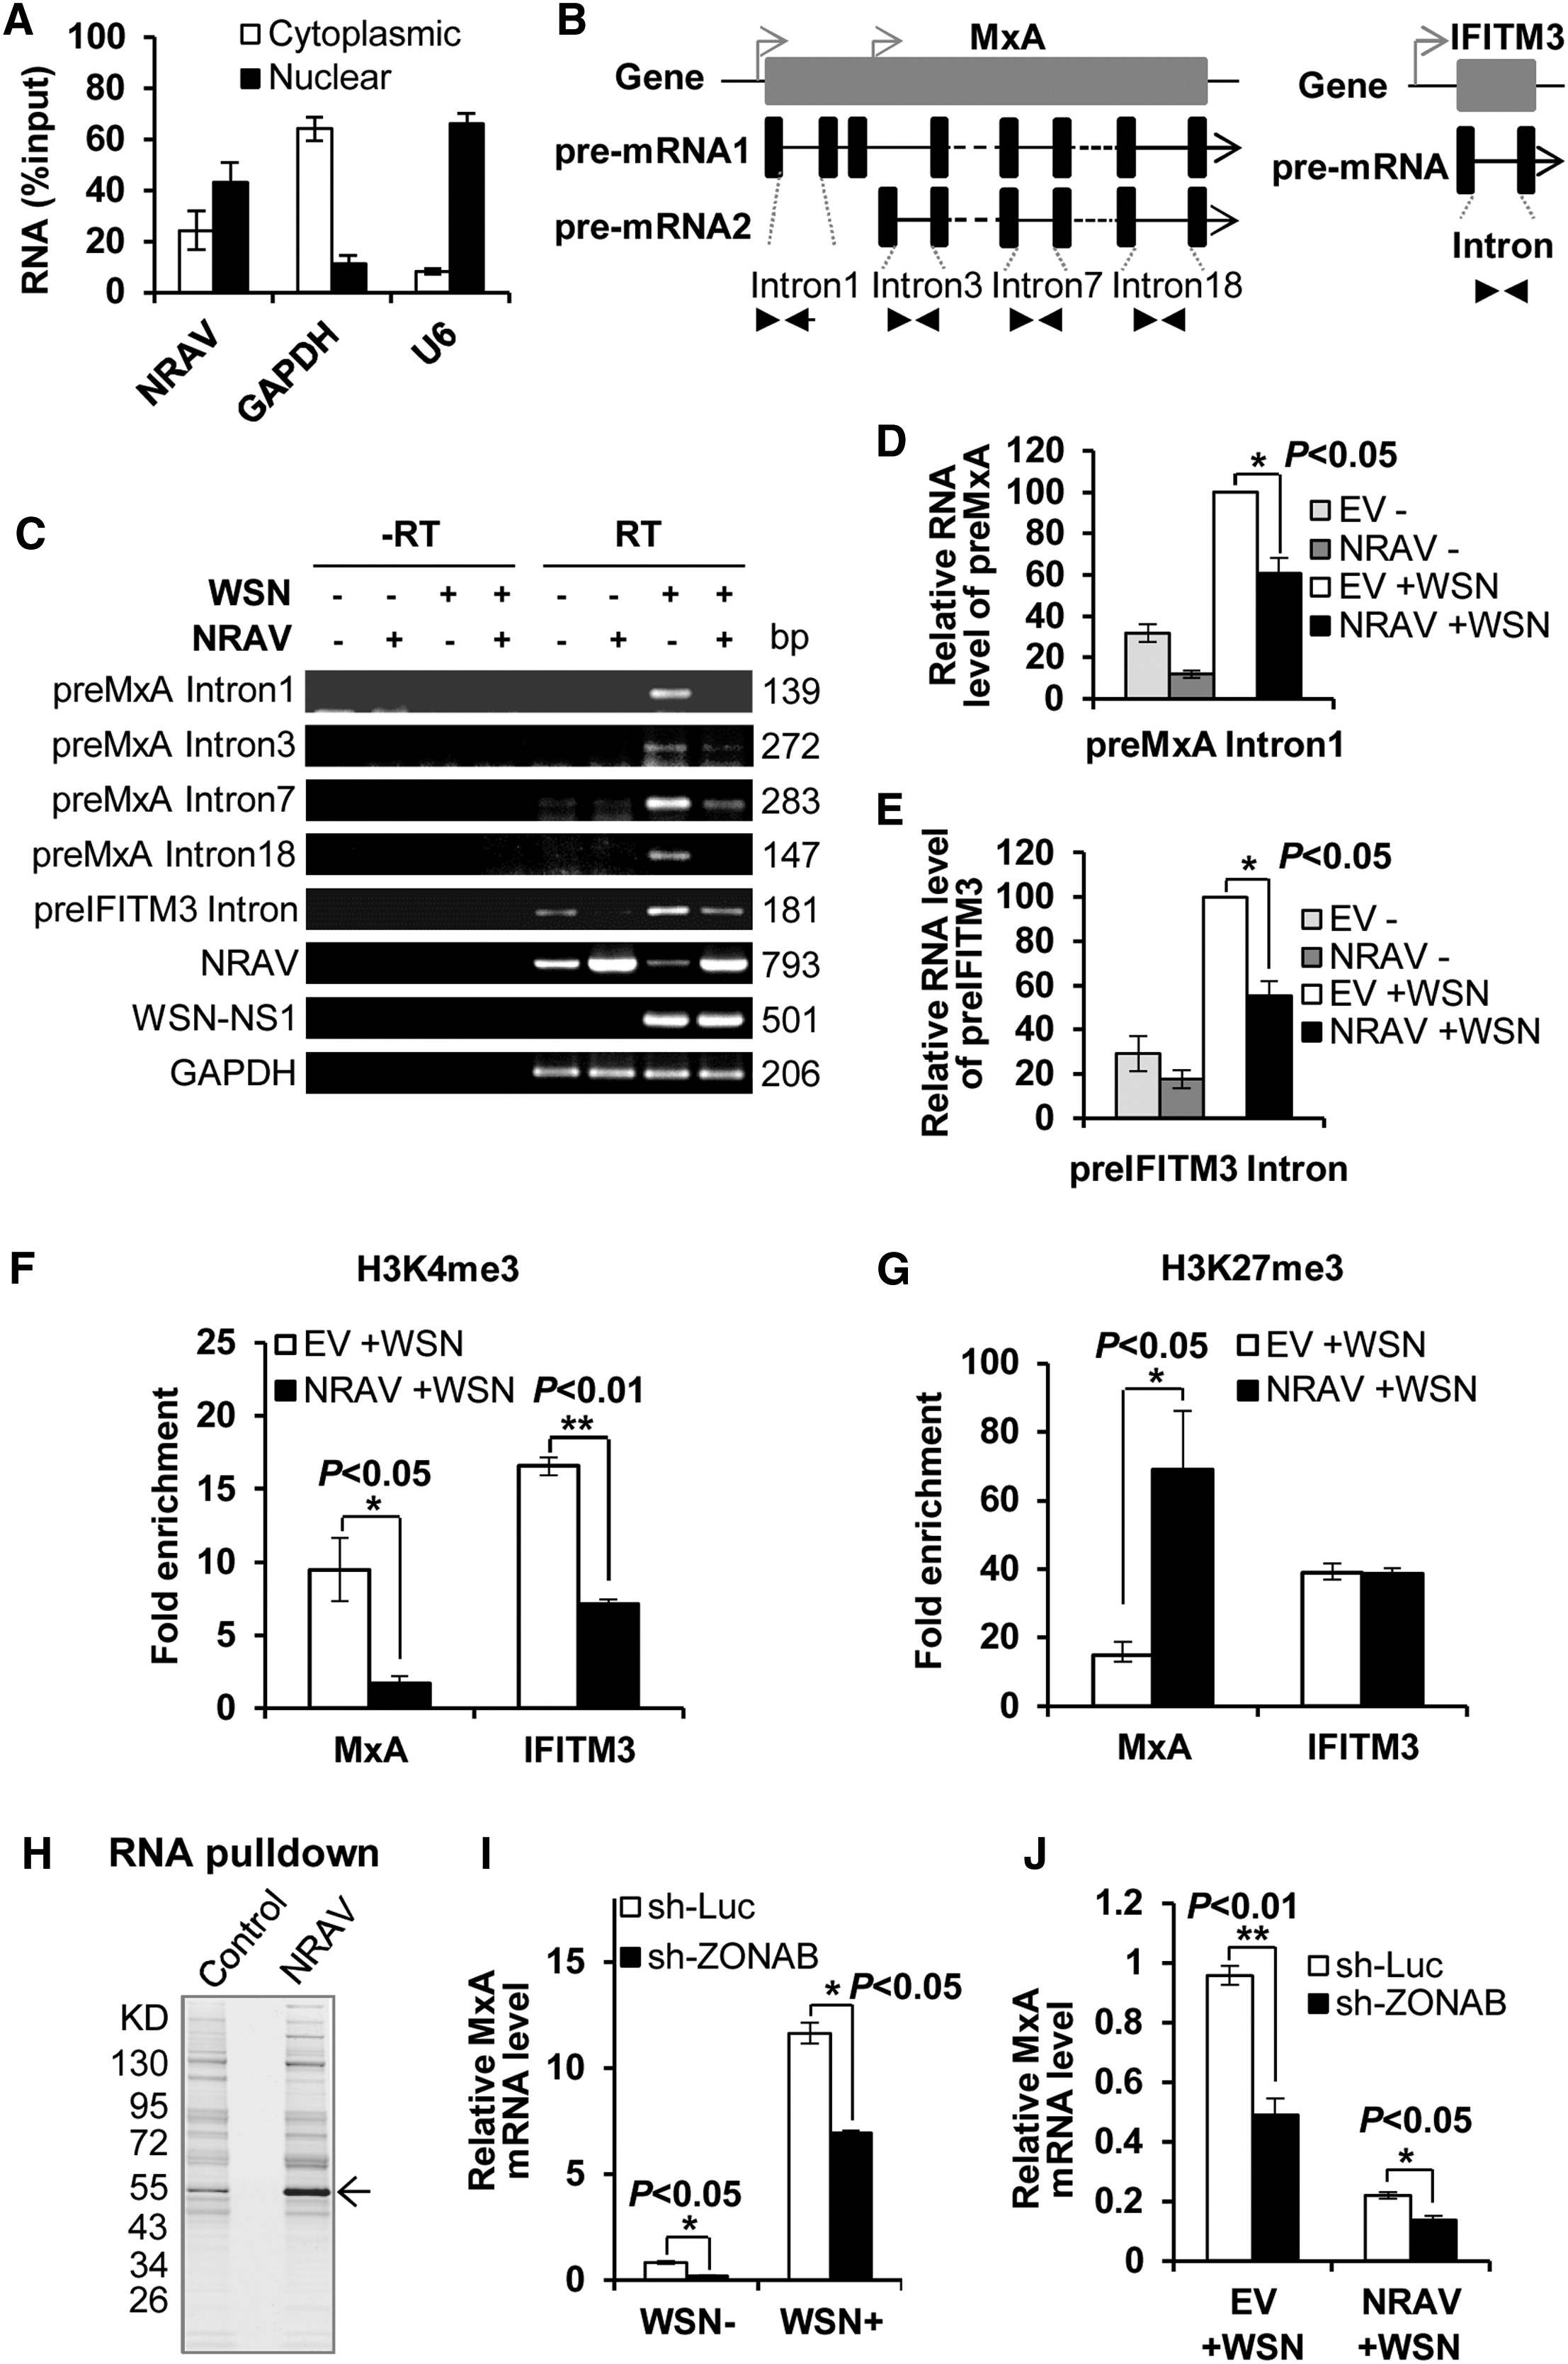 NRAV, a Long Noncoding RNA, Modulates Antiviral Responses